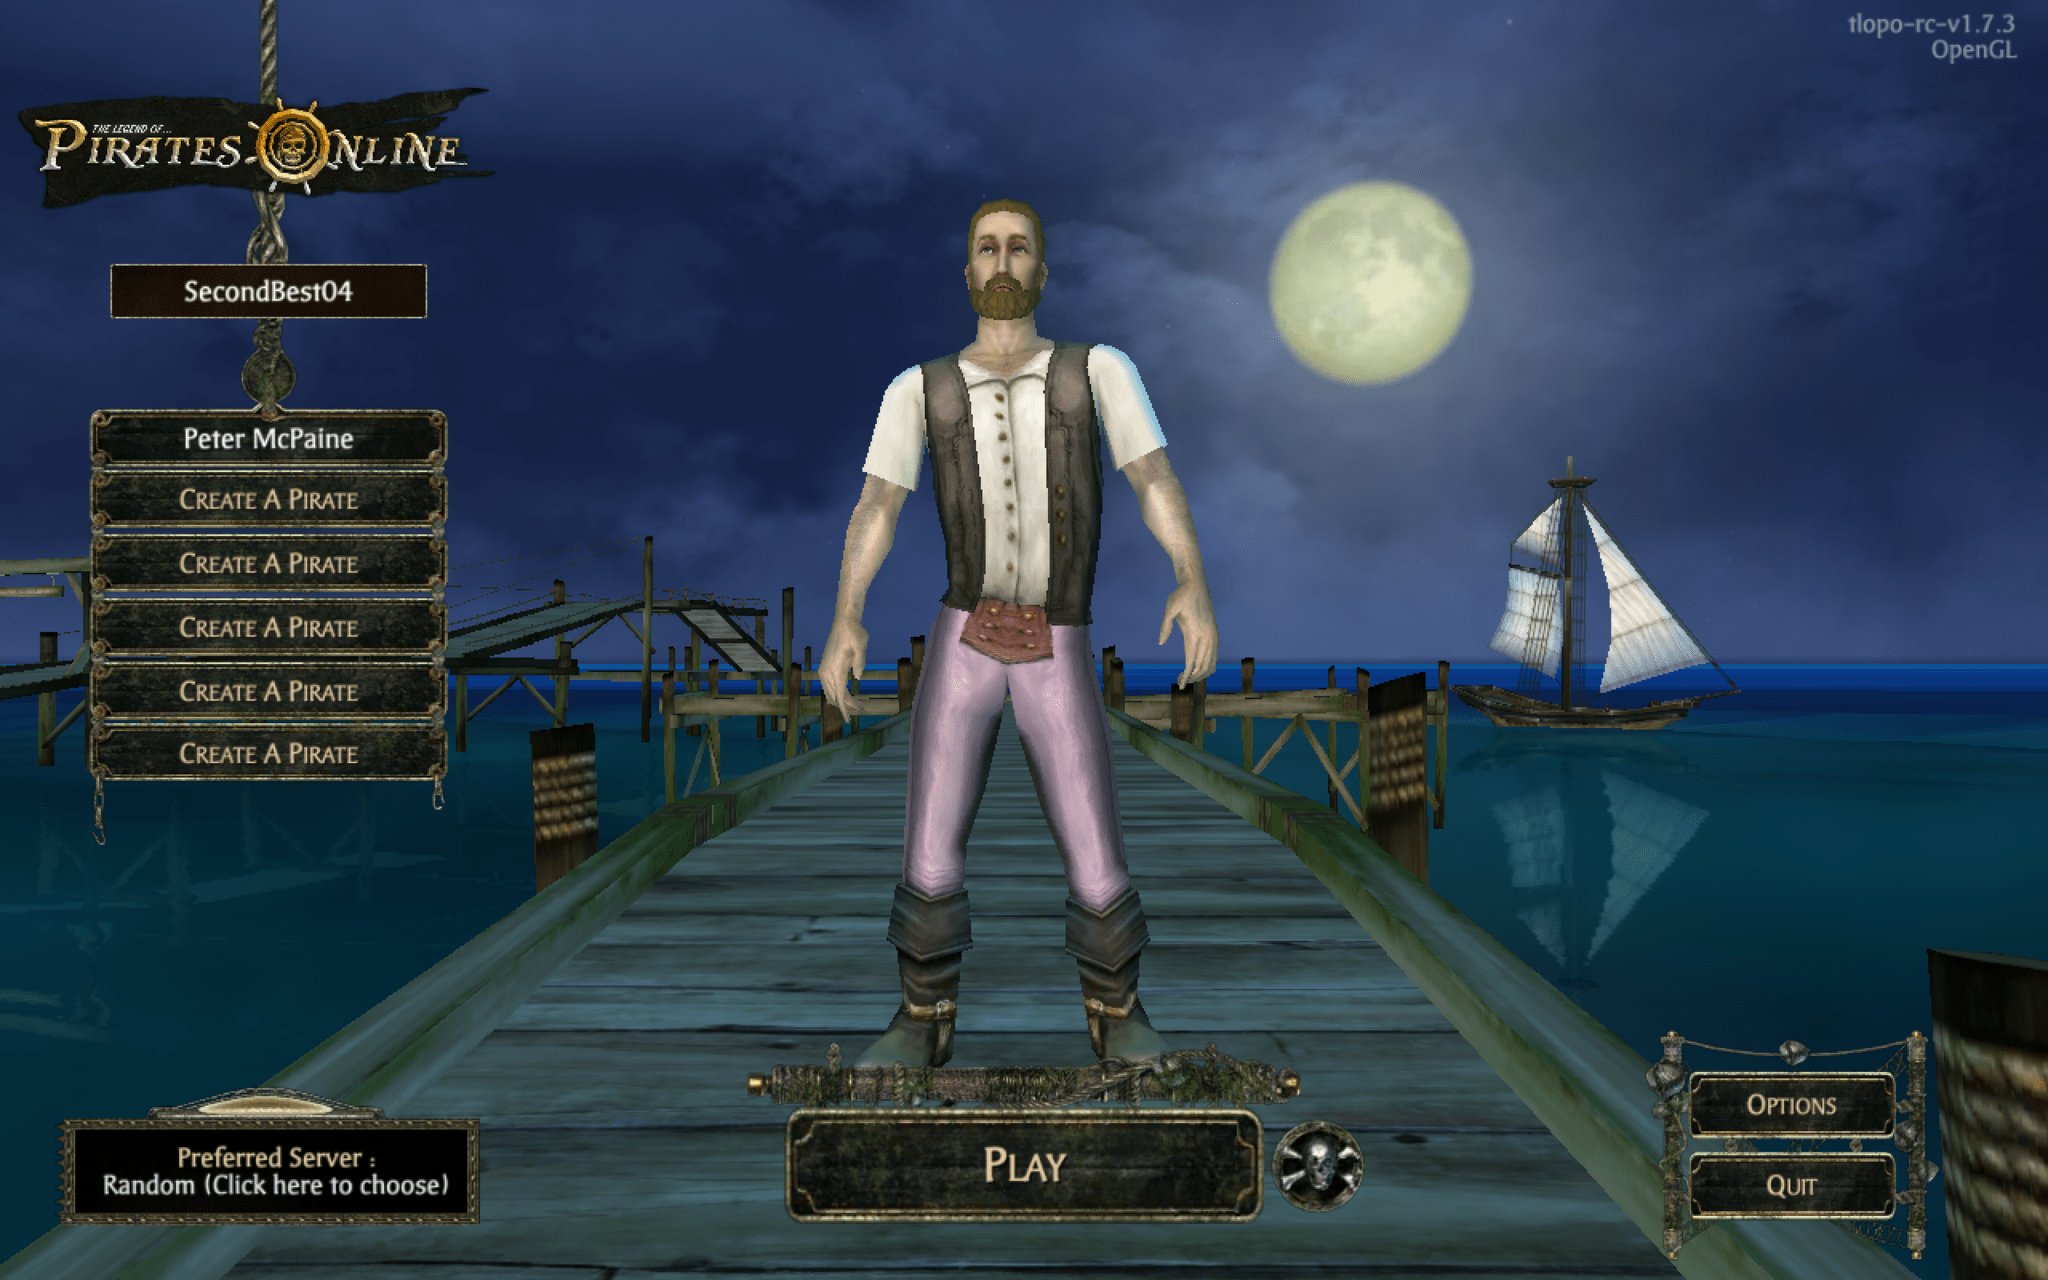 Shuttered Pirates of the Caribbean MMO Lives on in Fan-Made 'The Legend of the Pirates Online'